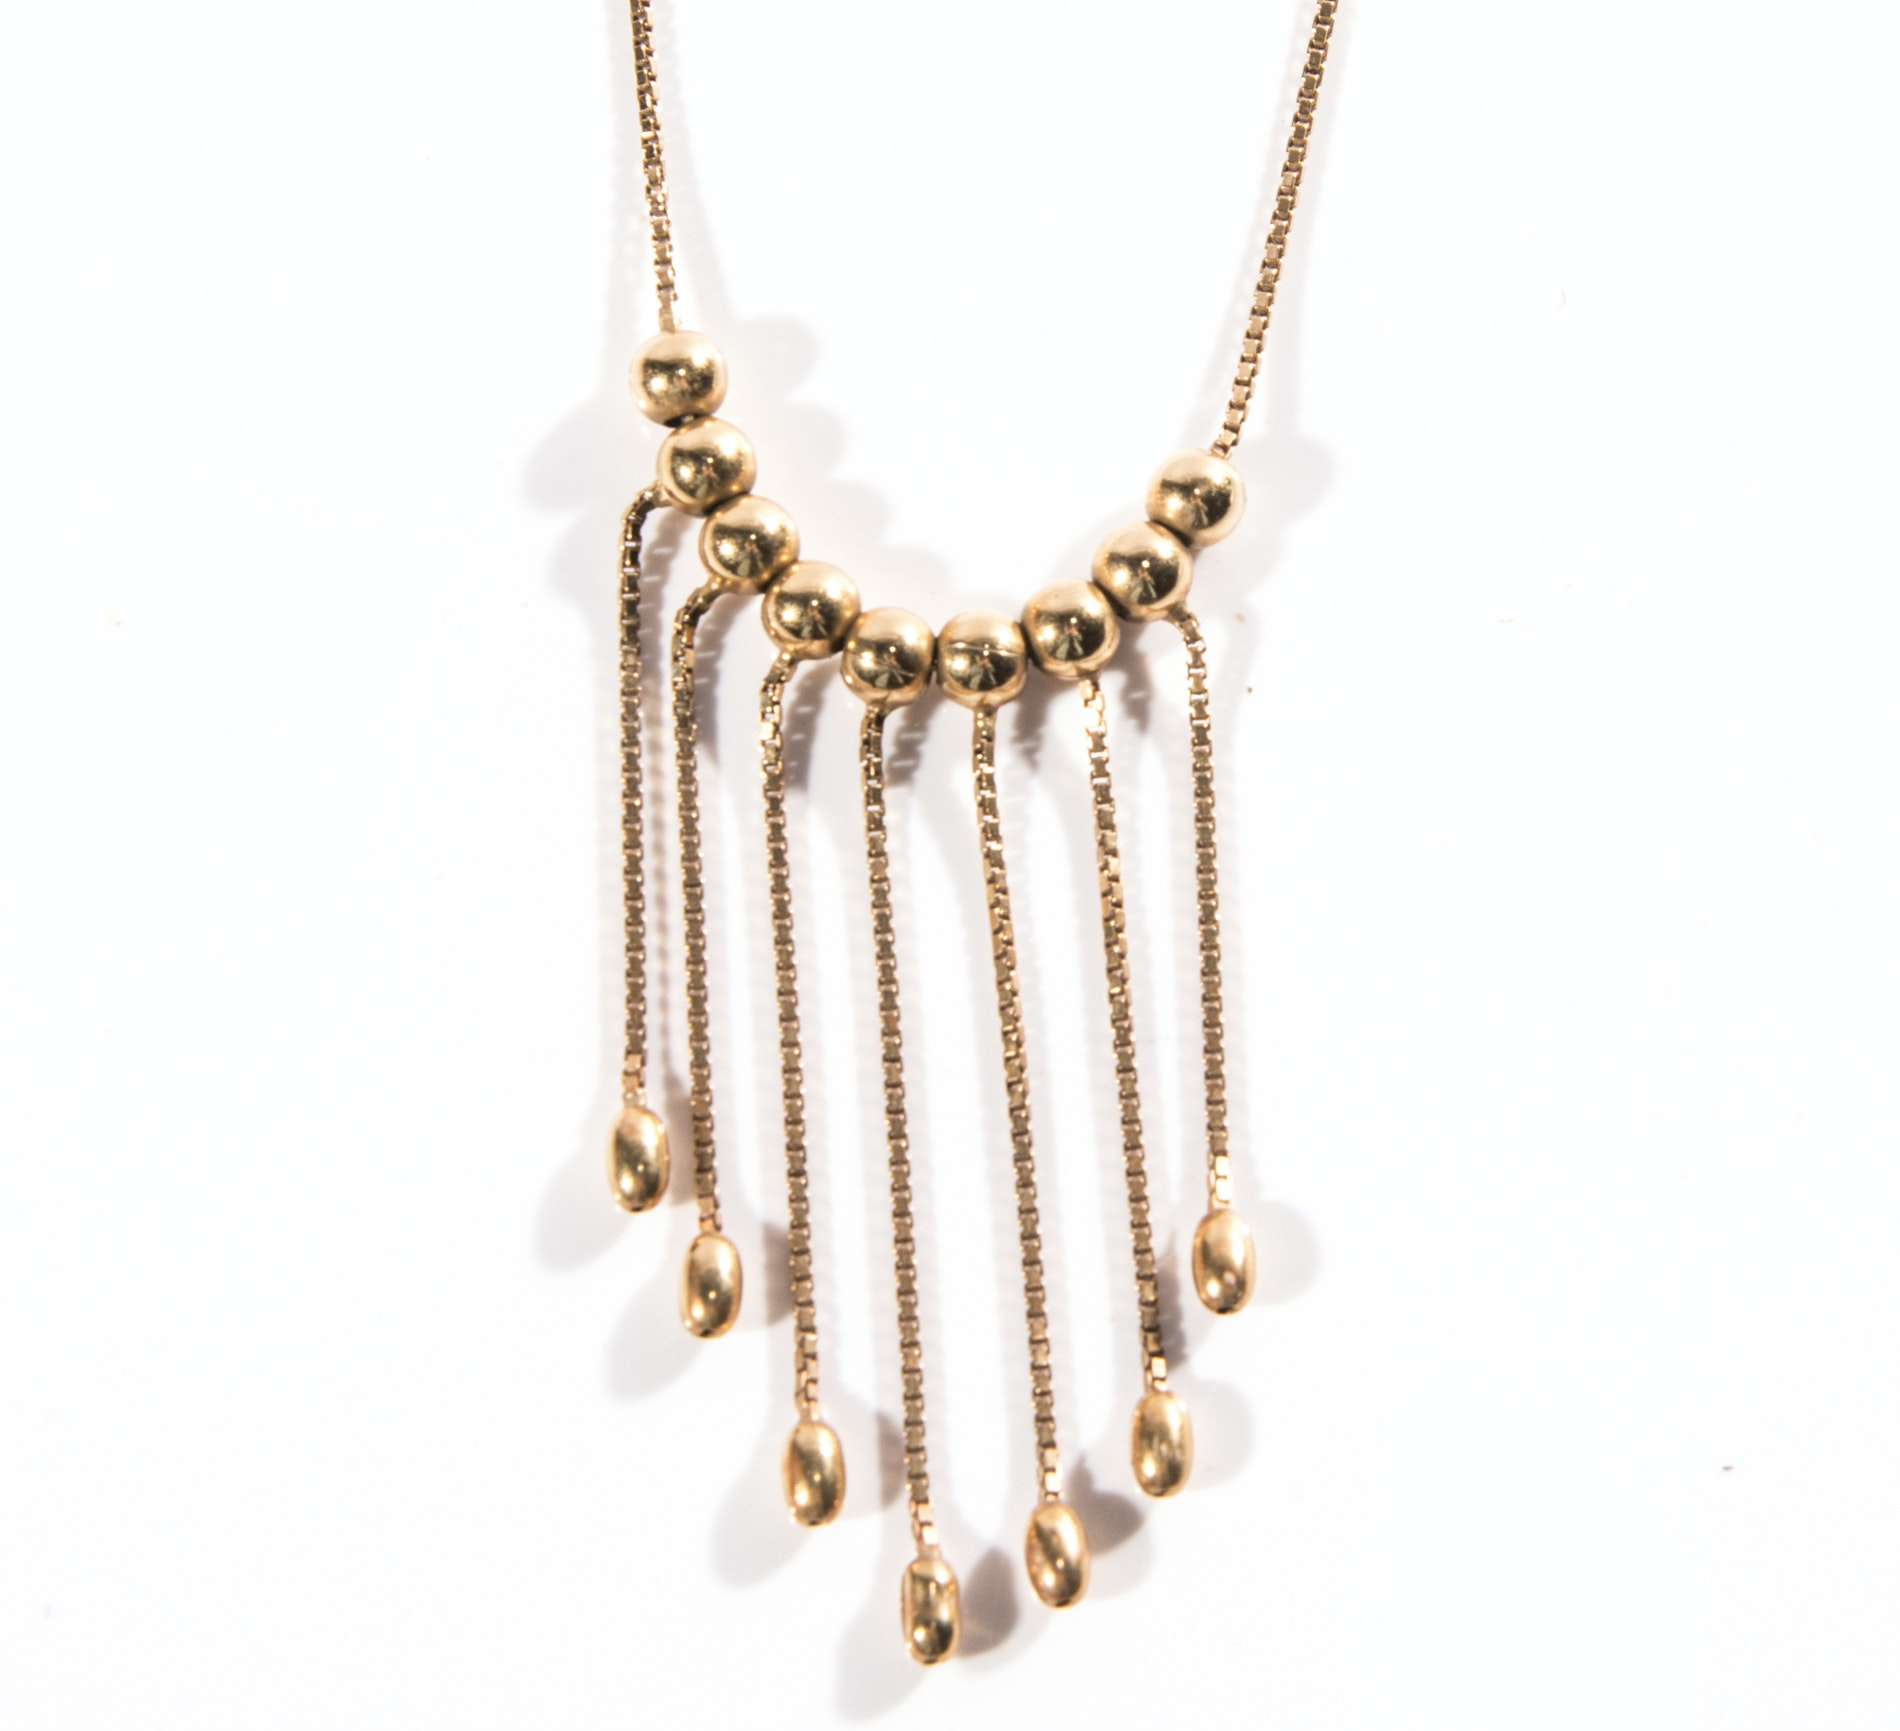 18K Yellow Gold Dangle Bead Necklace